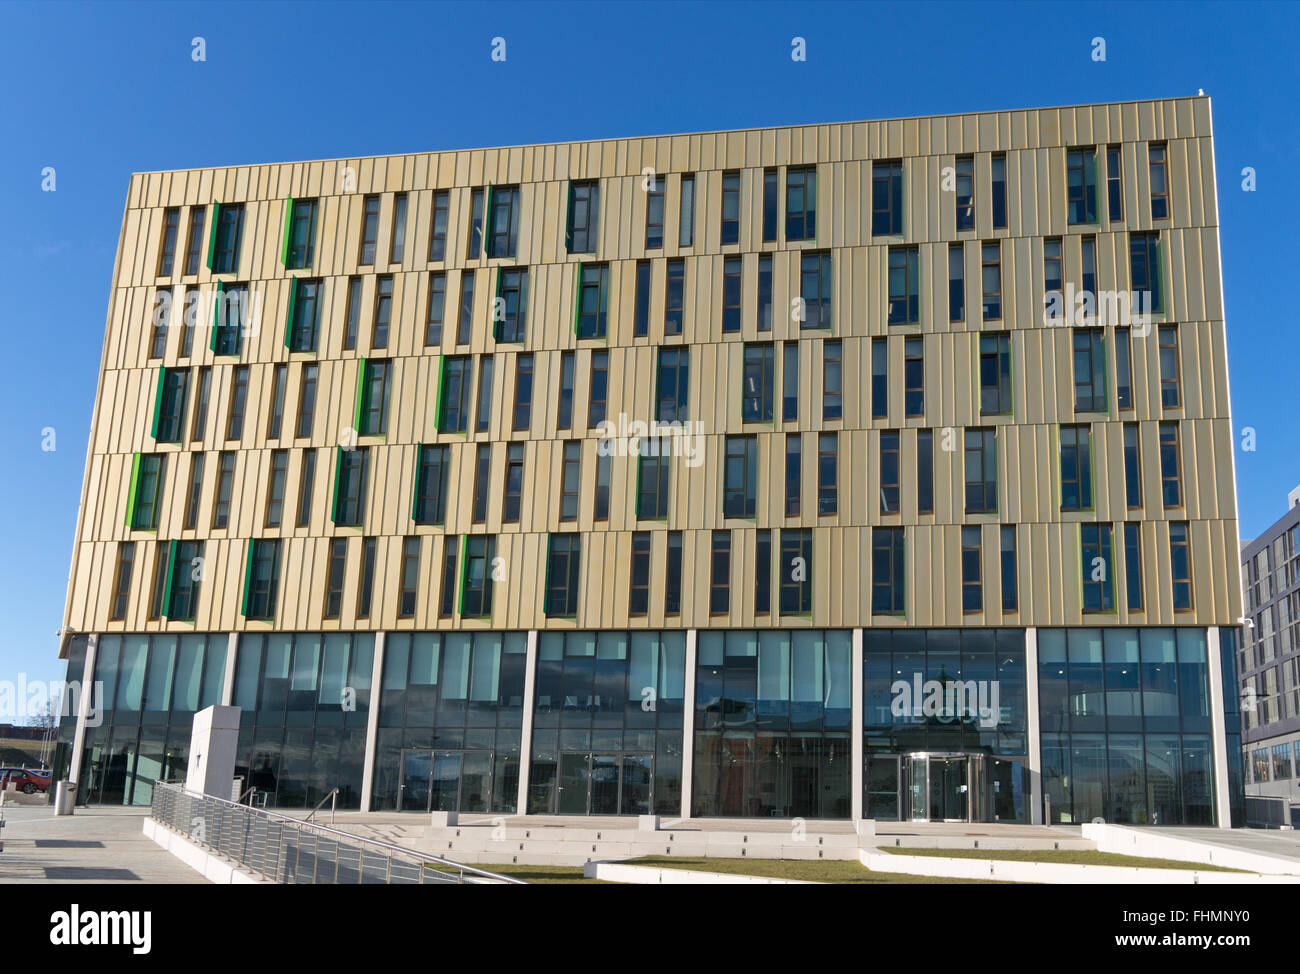 The Core a modern office building and part of Science Central in Newcastle upon Tyne, North East England, UK - Stock Image